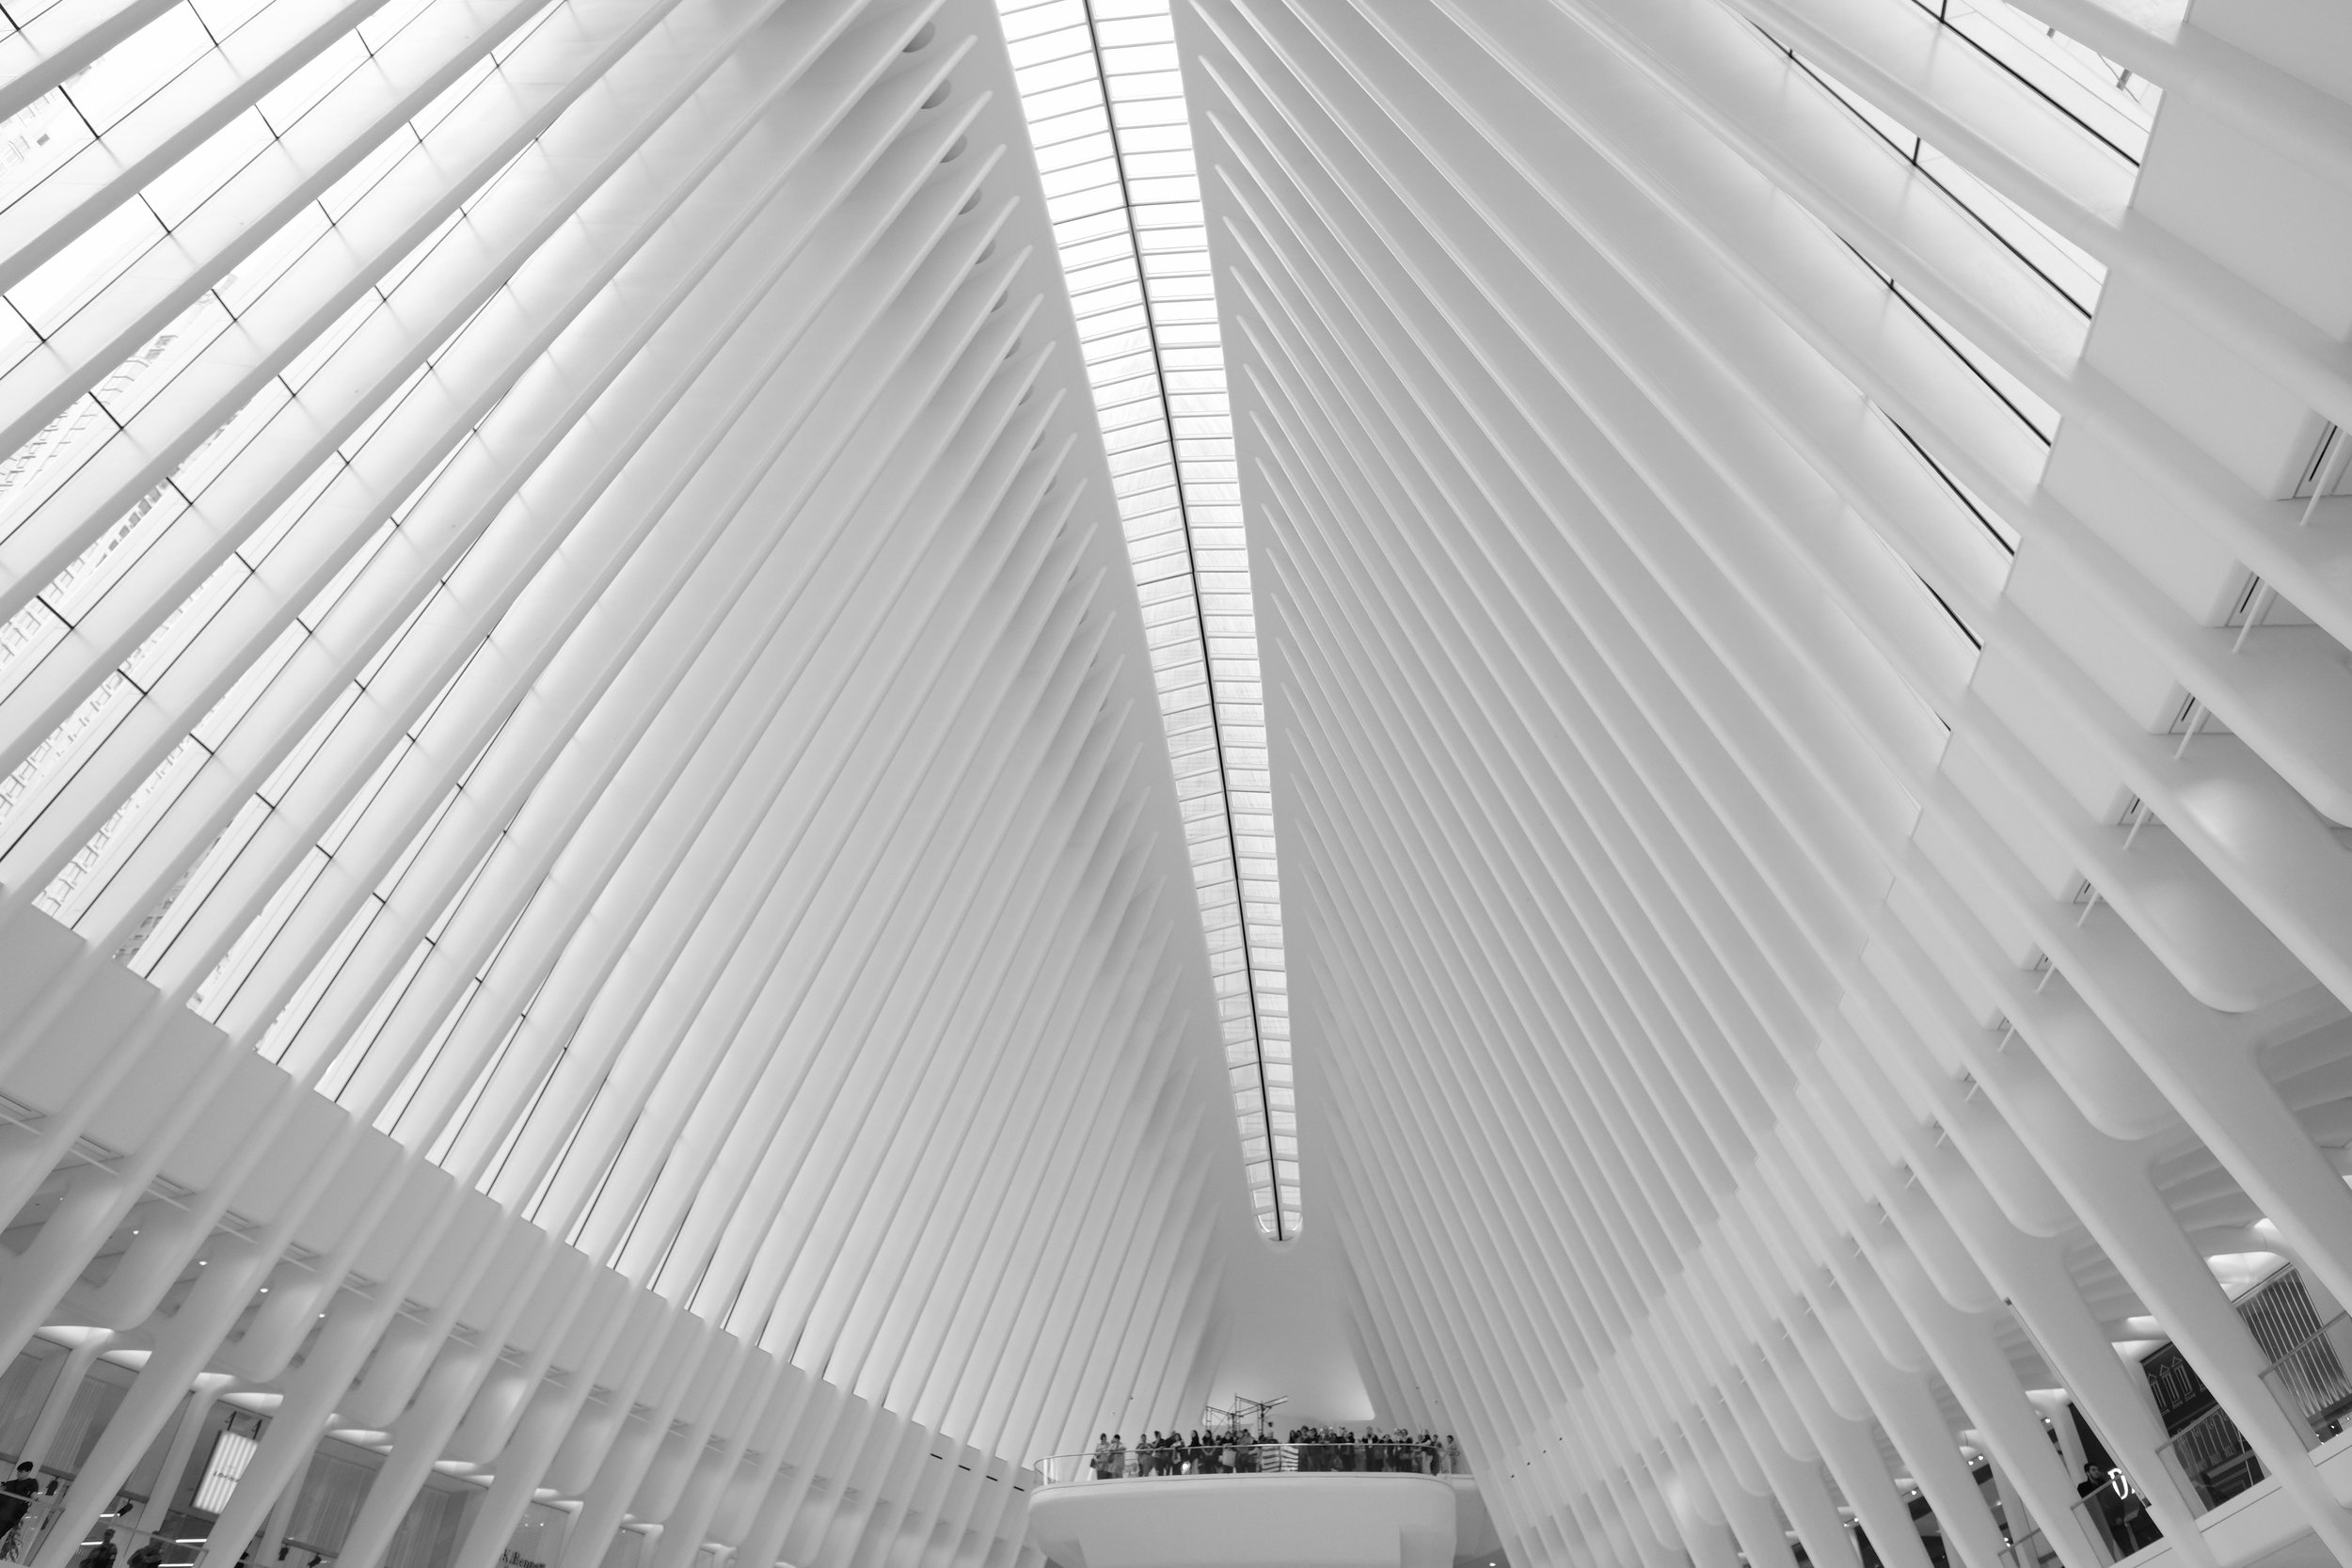 Inside the Oculus at The World Trade Center. SOOC, Acros NeoPan Film Emulation.